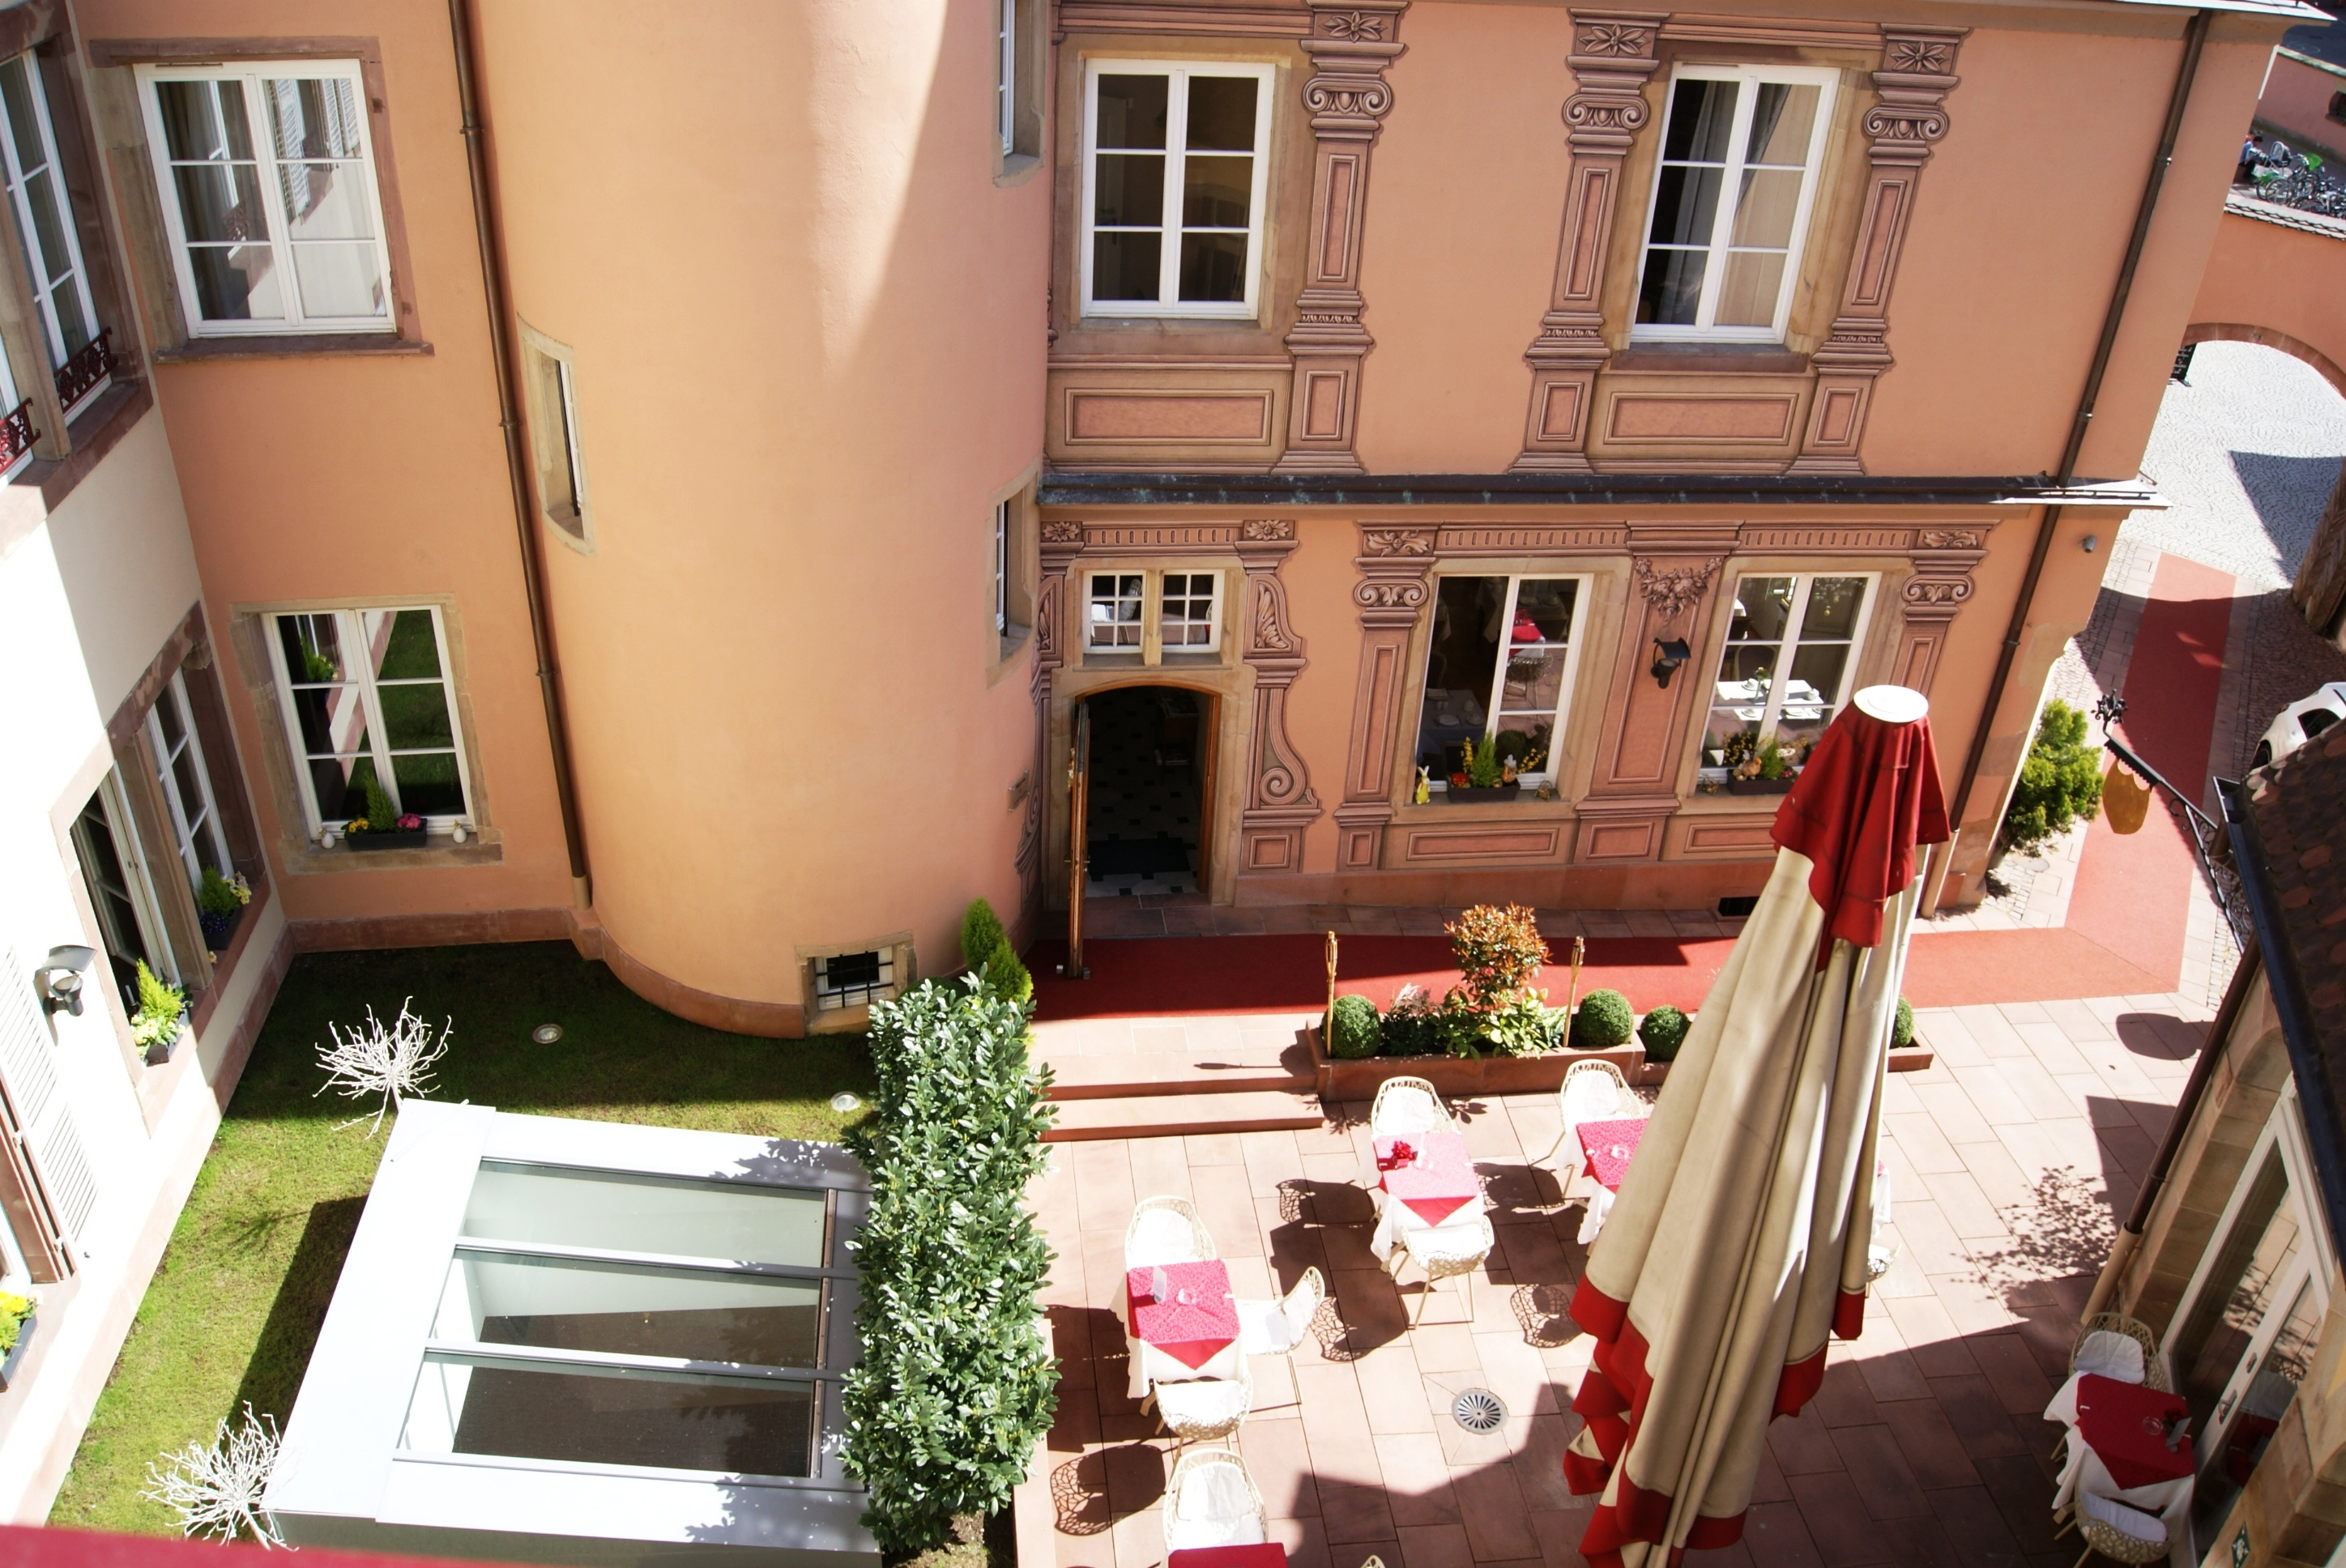 Miraculous Le Bouclier Dor Hotel Spa Strasbourg Great Prices At Download Free Architecture Designs Scobabritishbridgeorg